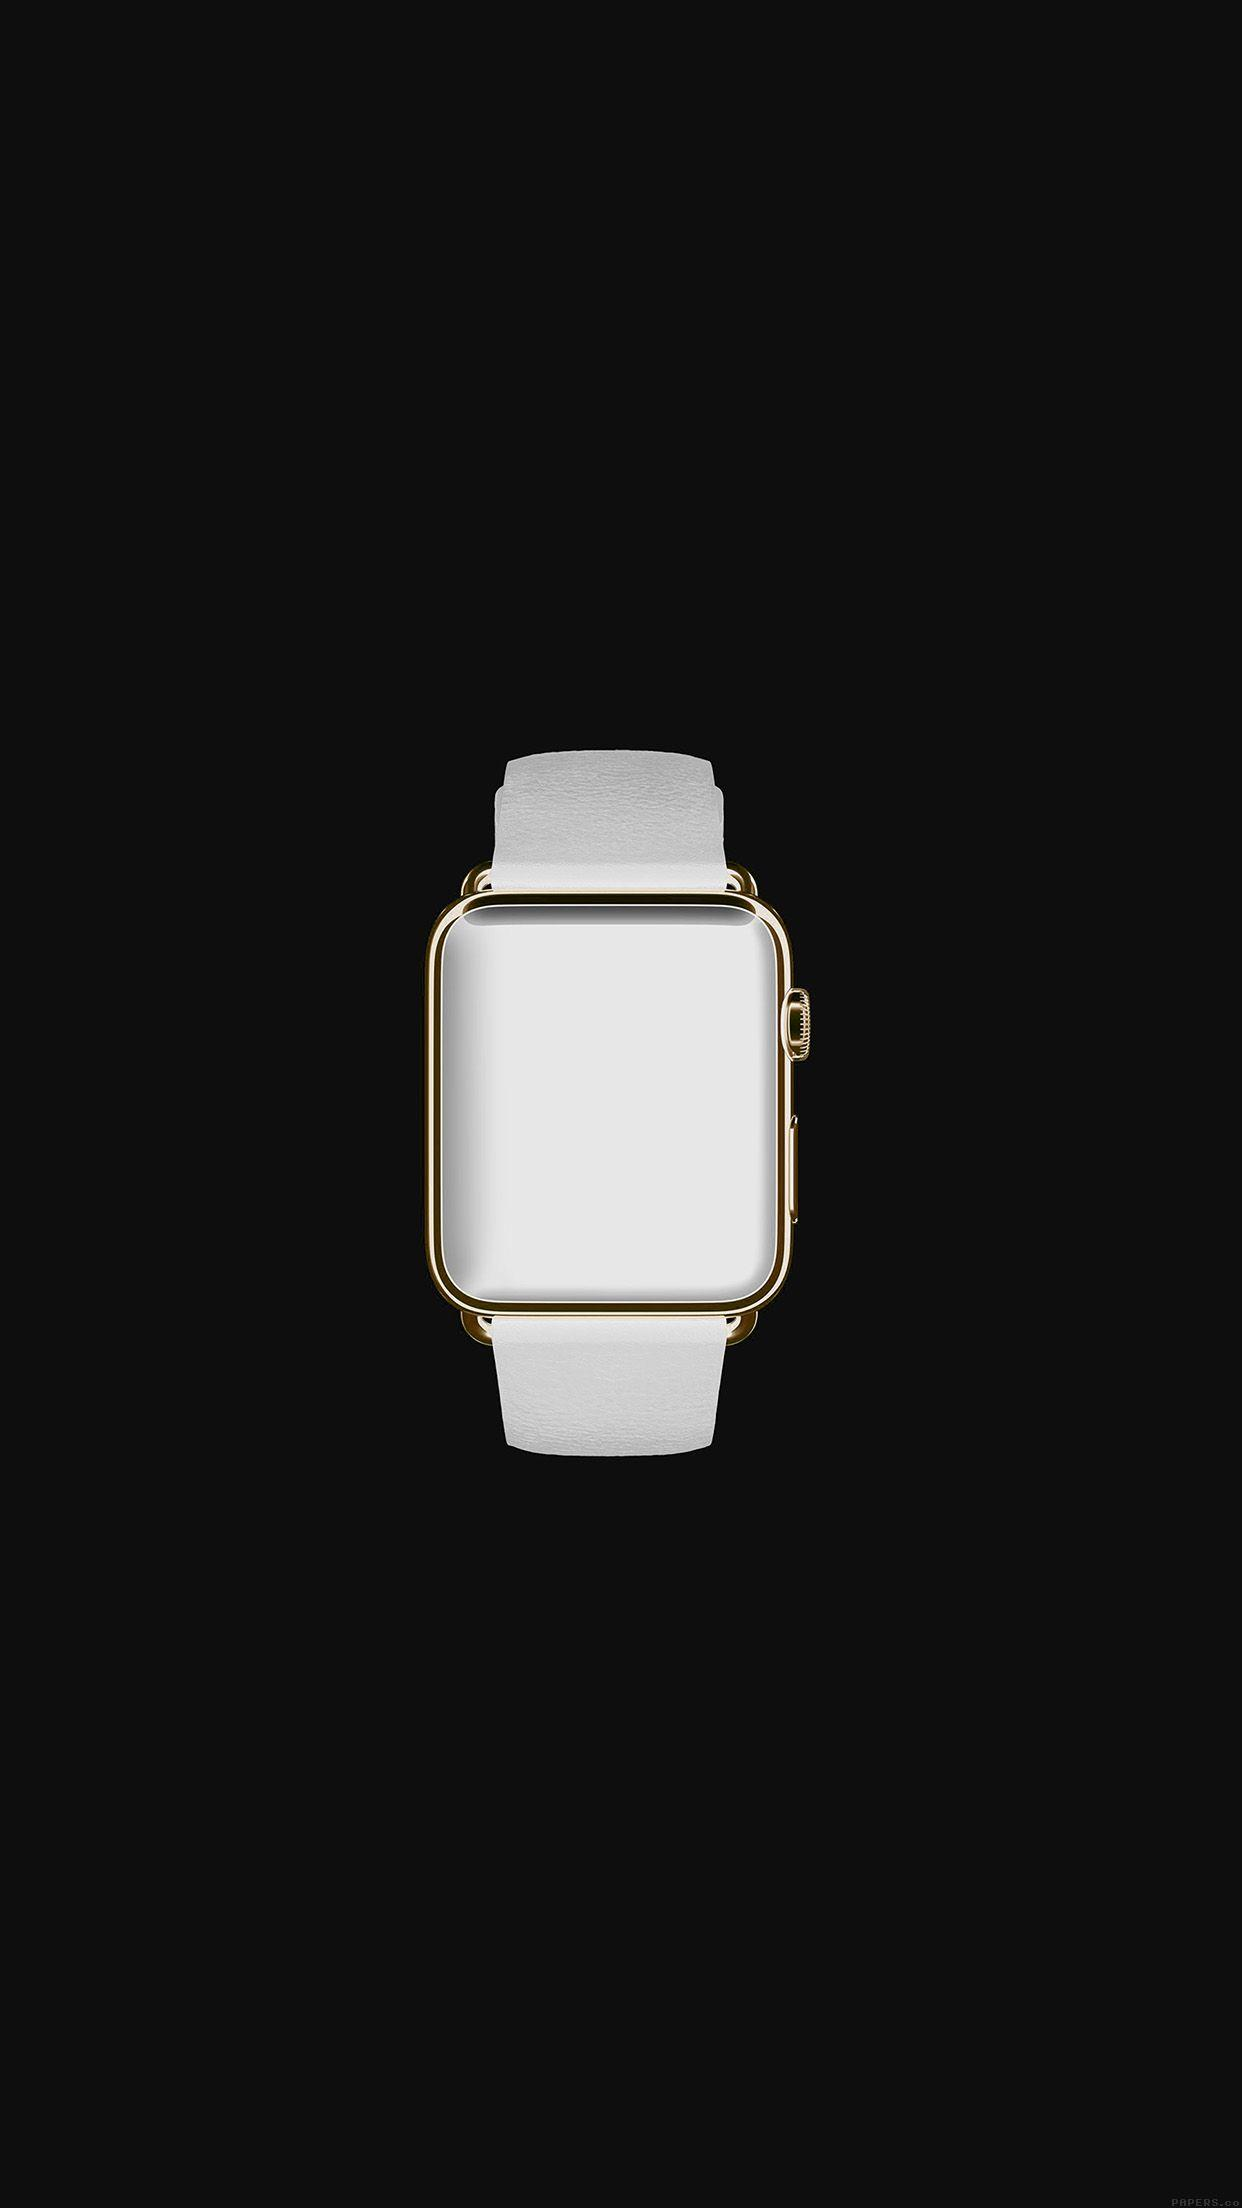 White Dark Apple Watch Simple Art Android wallpapers